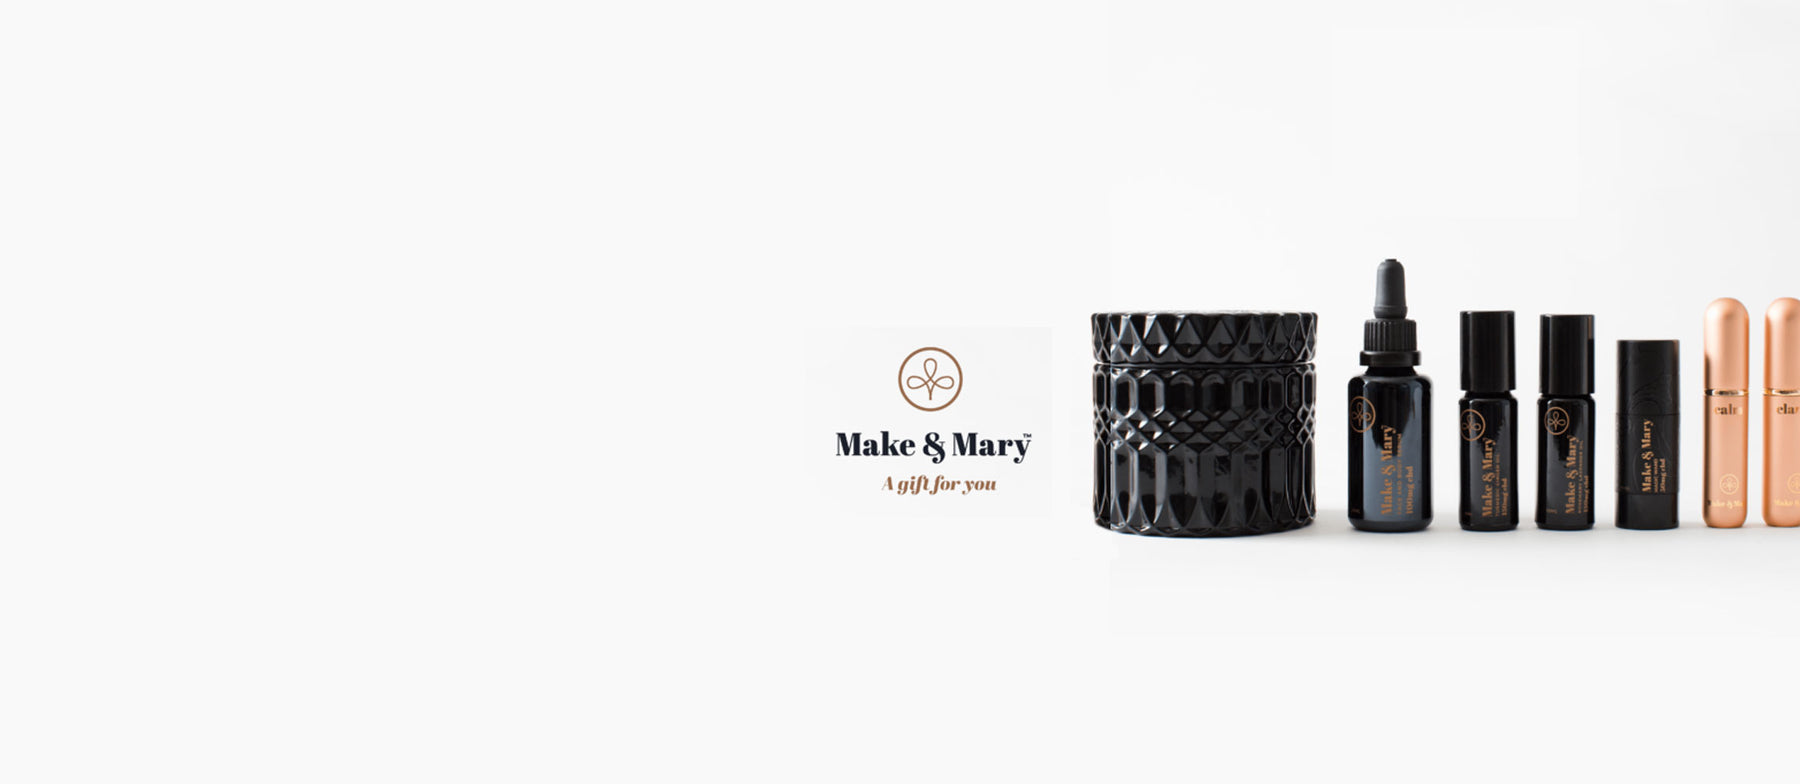 Make & Mary CBD Products Houston - Candle, Aromatherapy, Tinctures